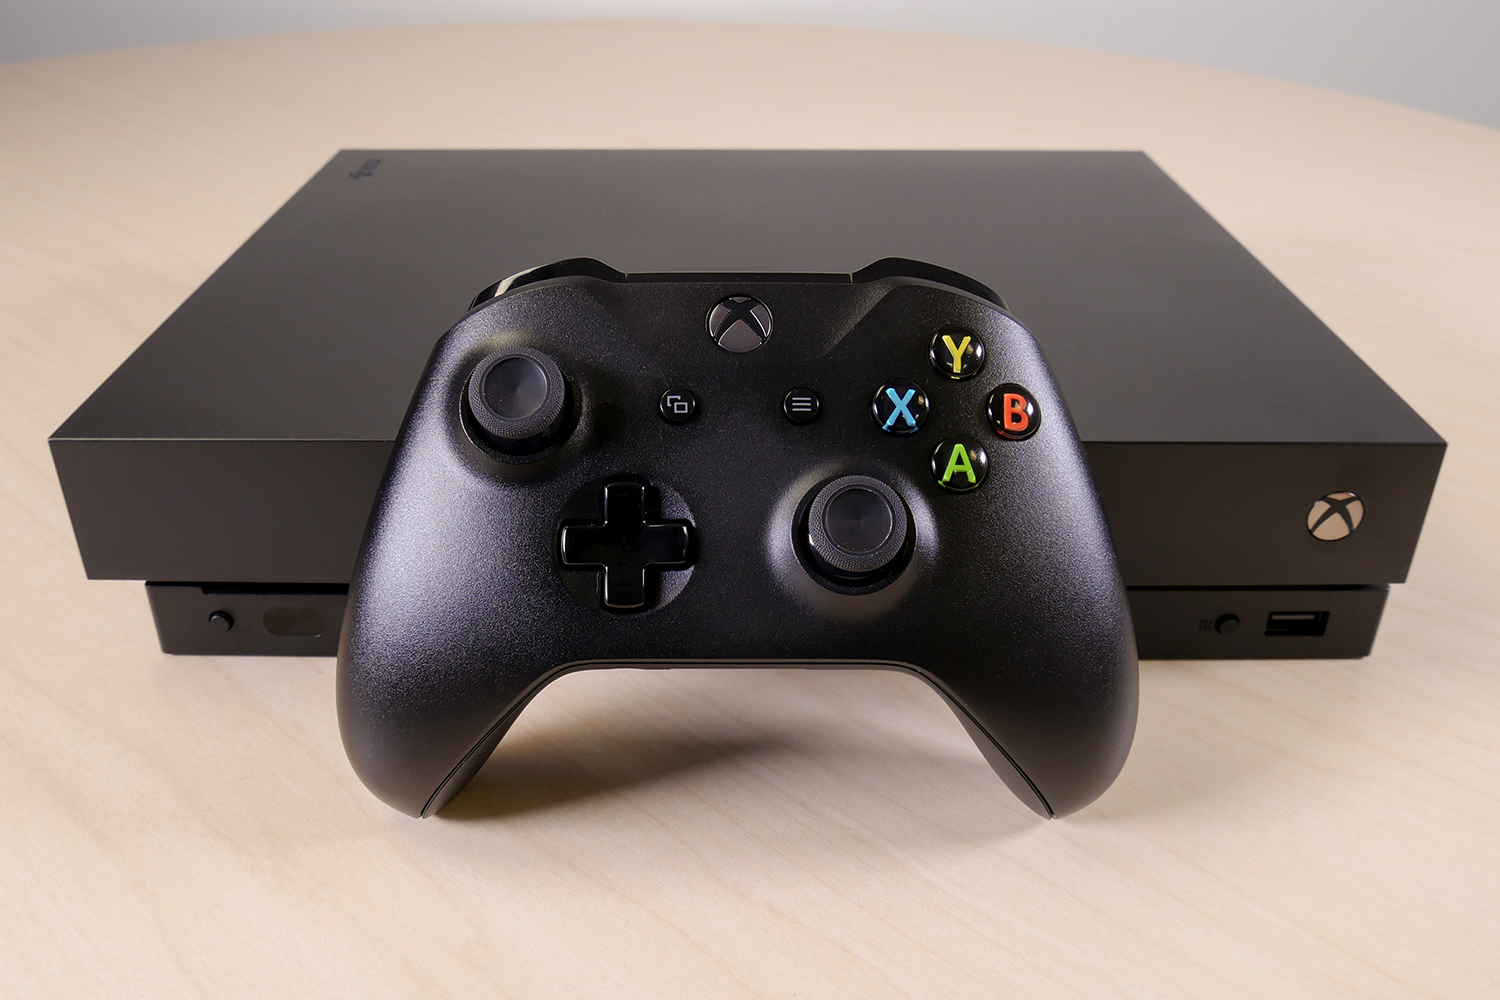 Normal Games For Xbox : Xbox chief says microsoft will start more first party game